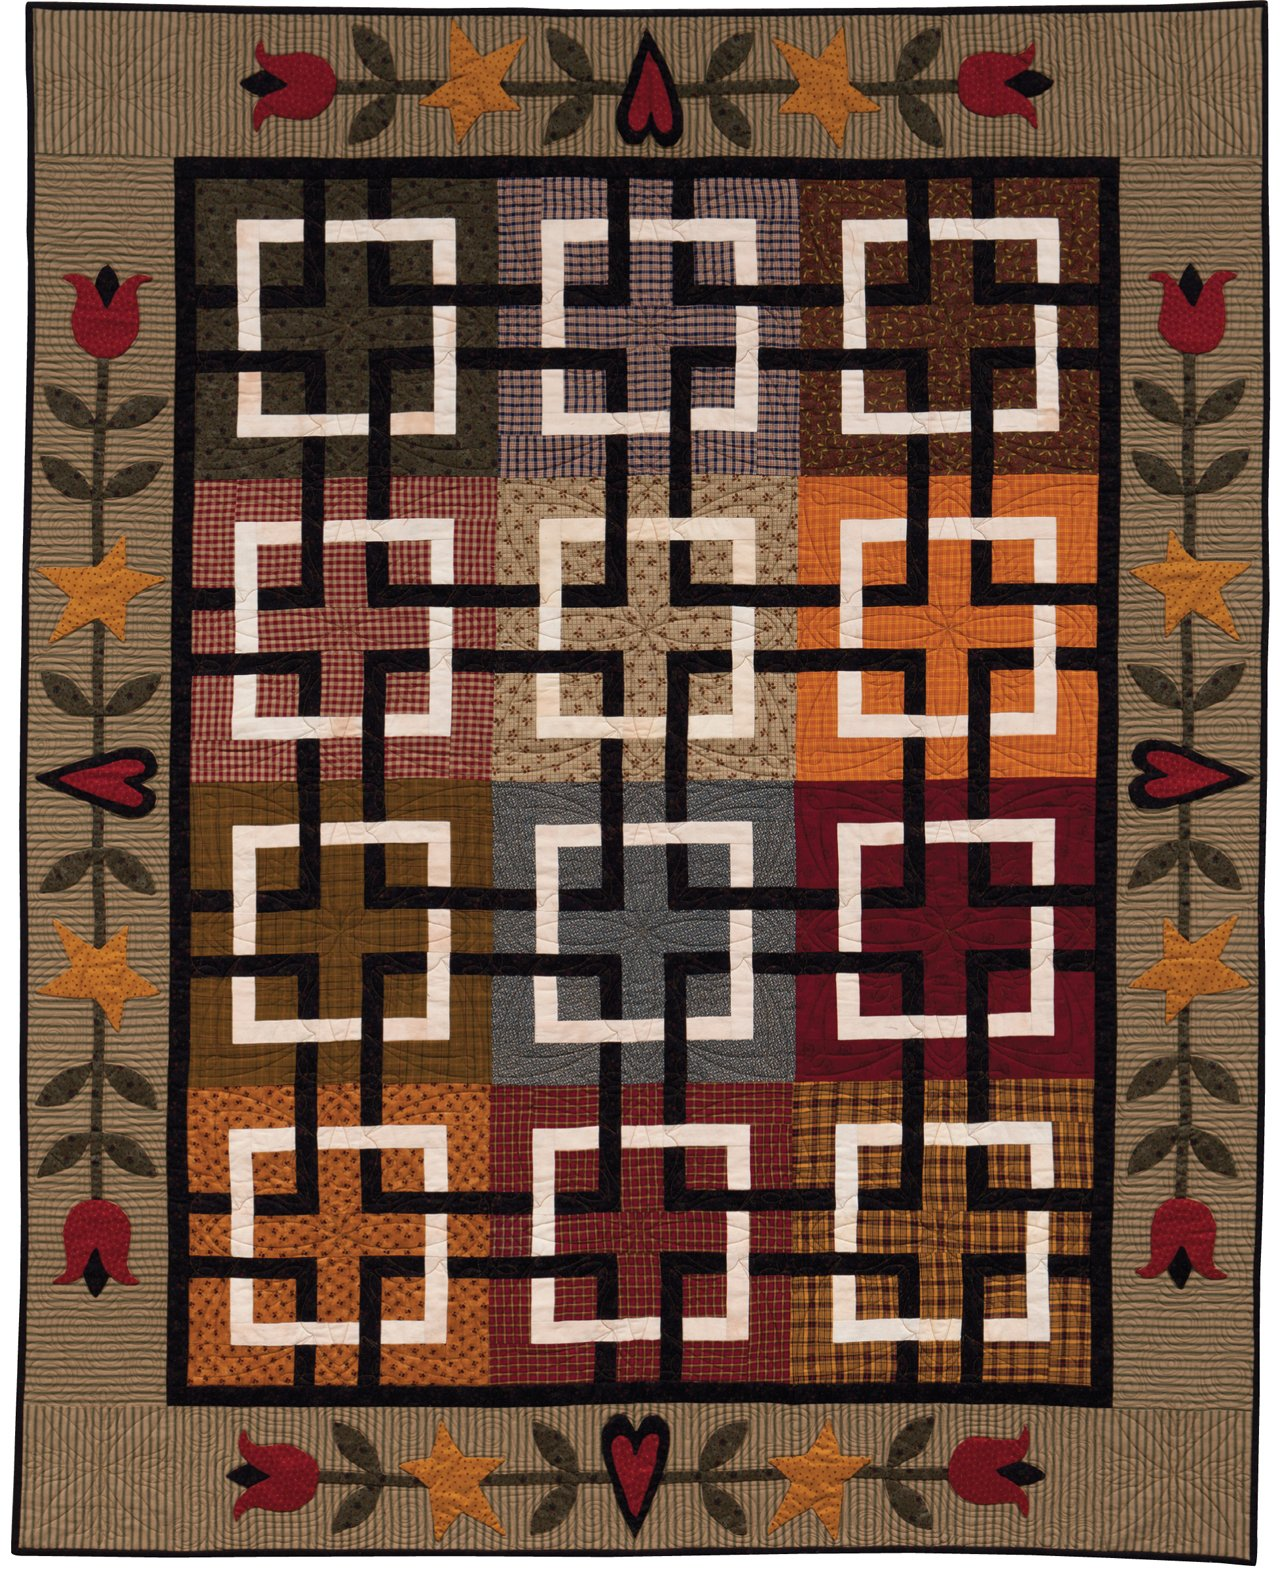 At Home with Country Quilts: 13 Patchwork Patterns: Cheryl Wall ... : country home quilts - Adamdwight.com